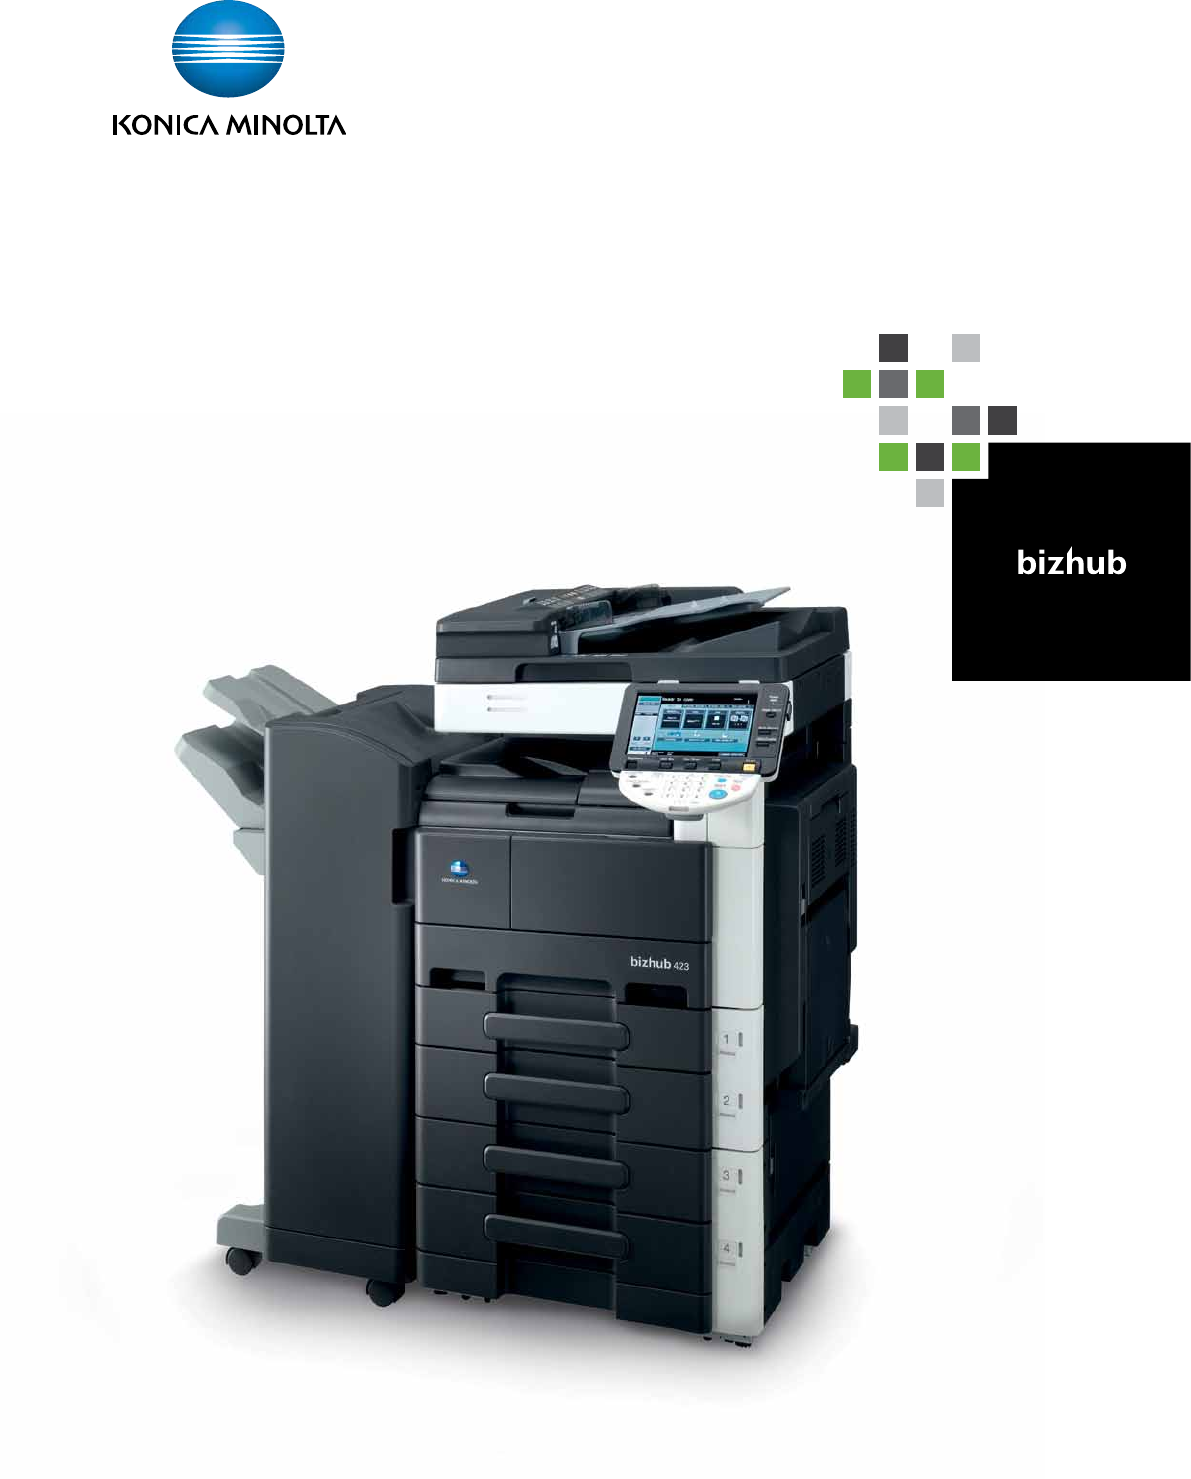 konica minolta all in one printer 423 user guide manualsonline com rh office manualsonline com bizhub c284e user guide bizhub c368 user guide